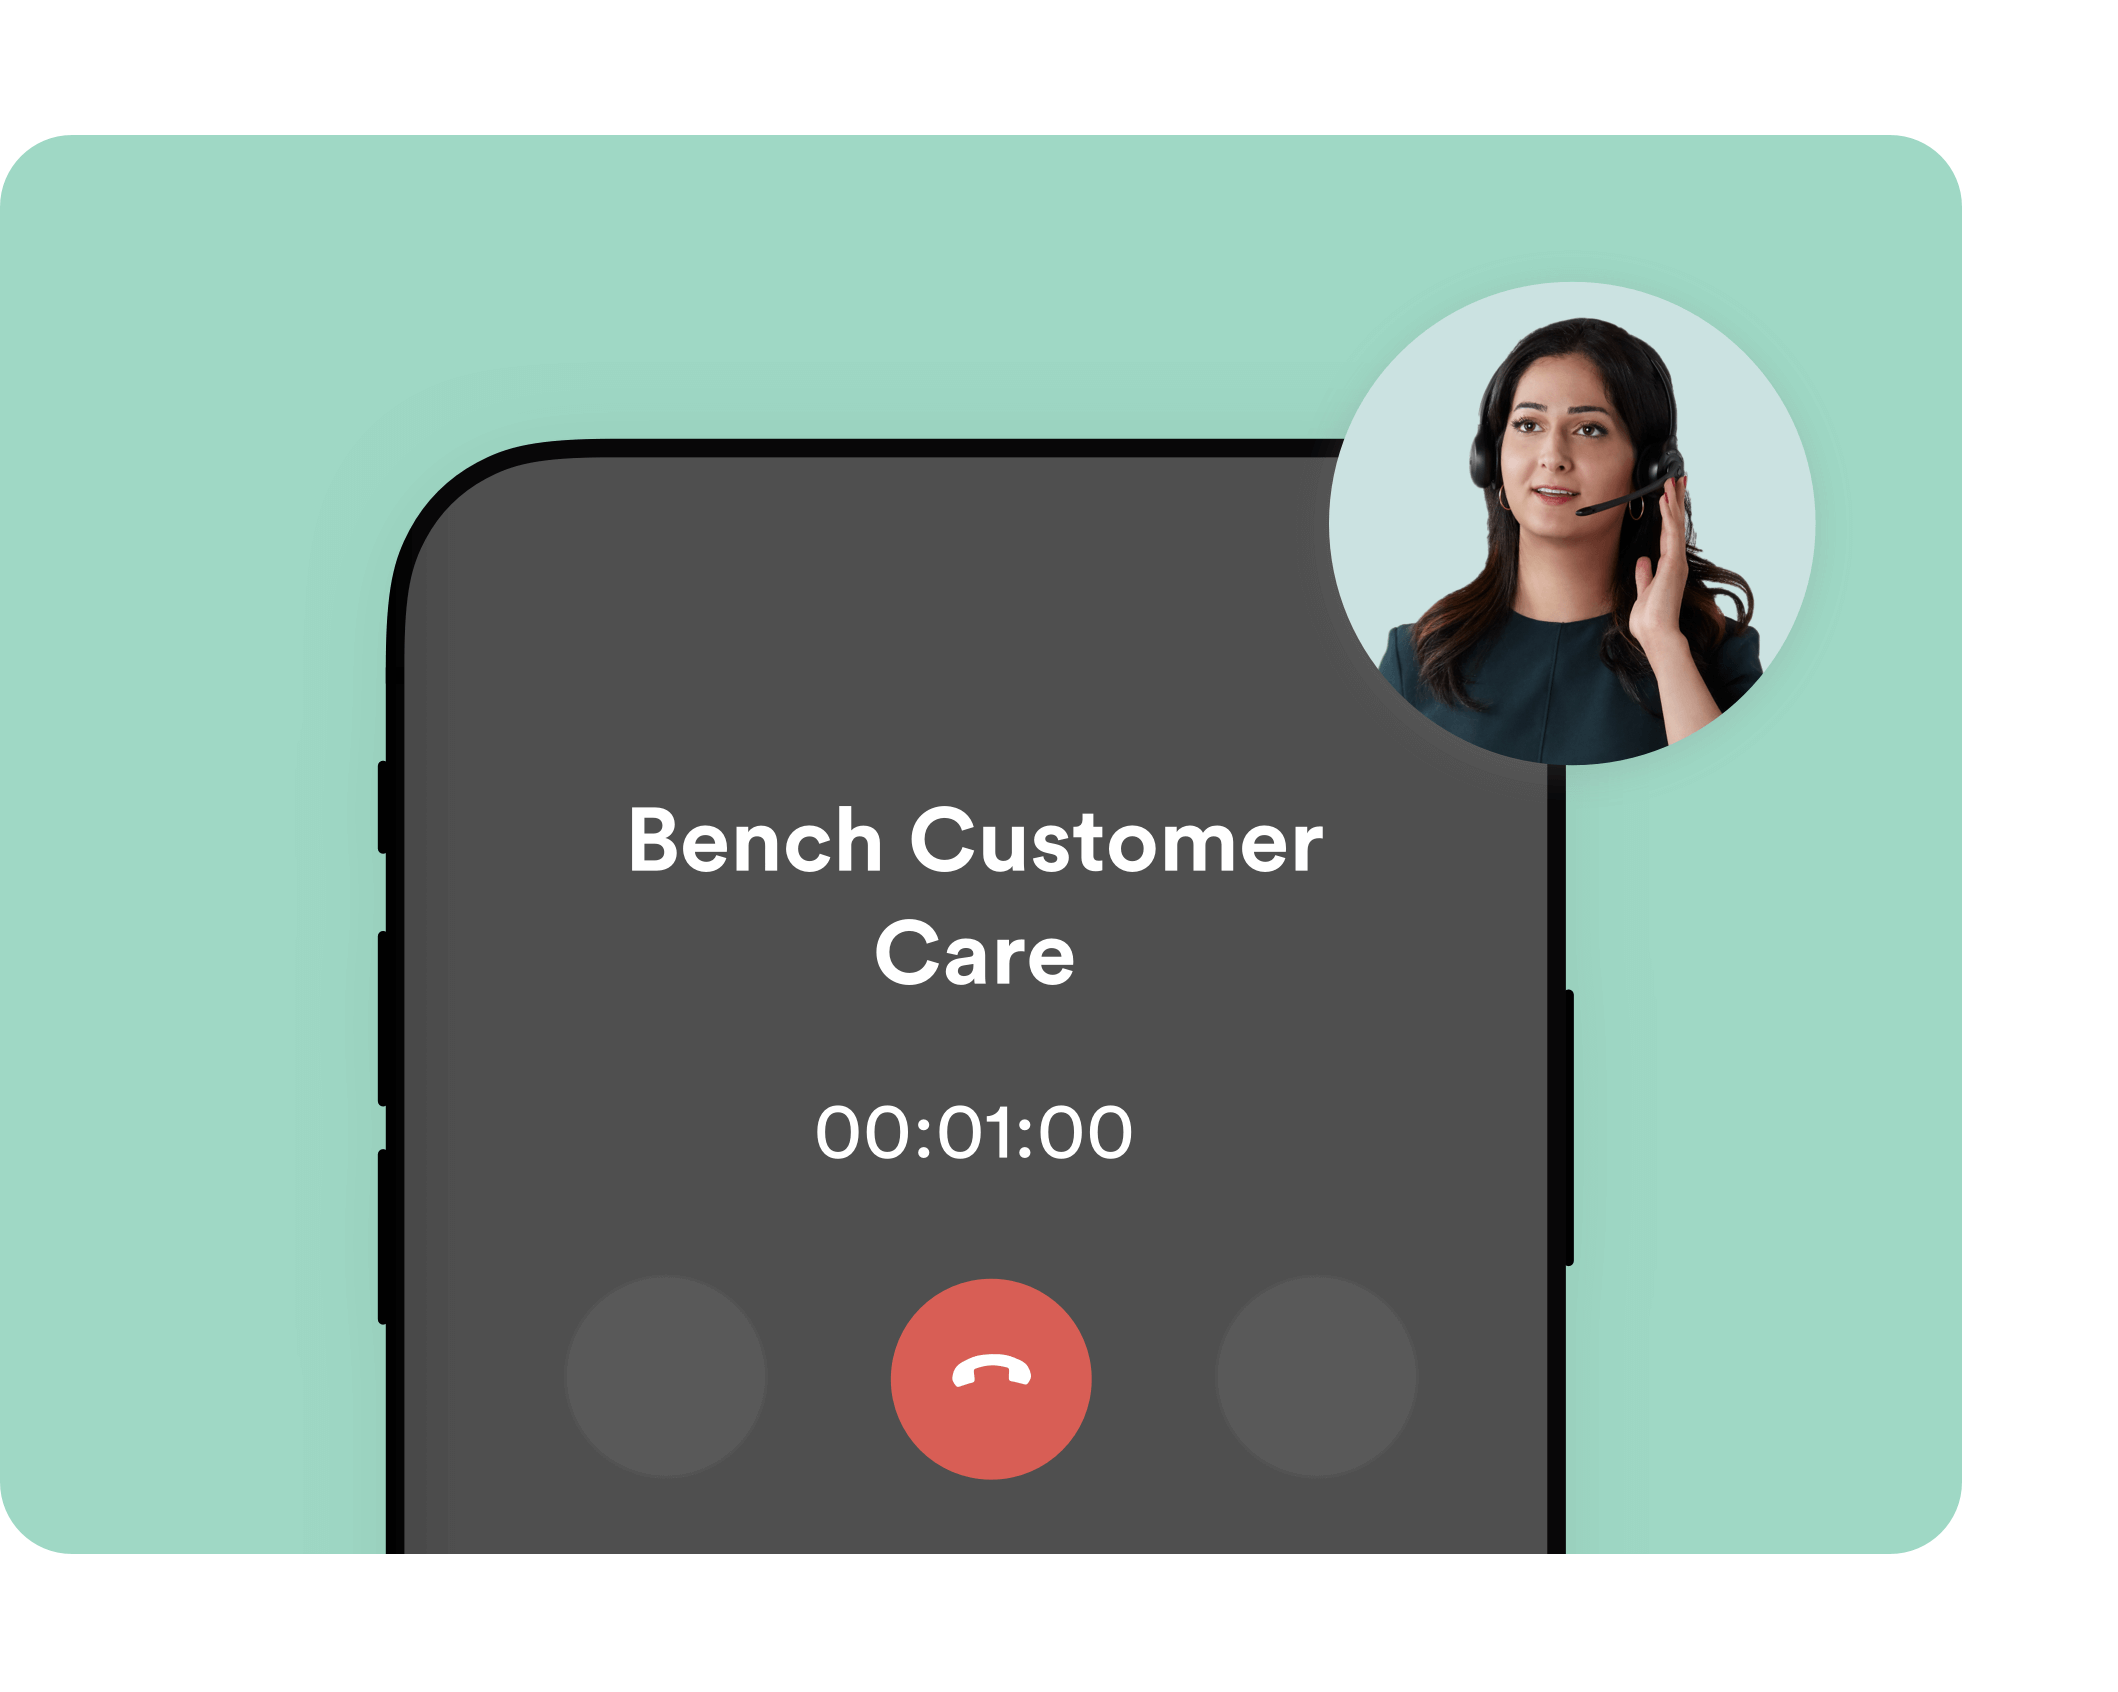 Bench Software - Unlimited support from a Bench bookkeeping expert. You'll receive real support from real humans, allowing you to take the guesswork out of running your business.